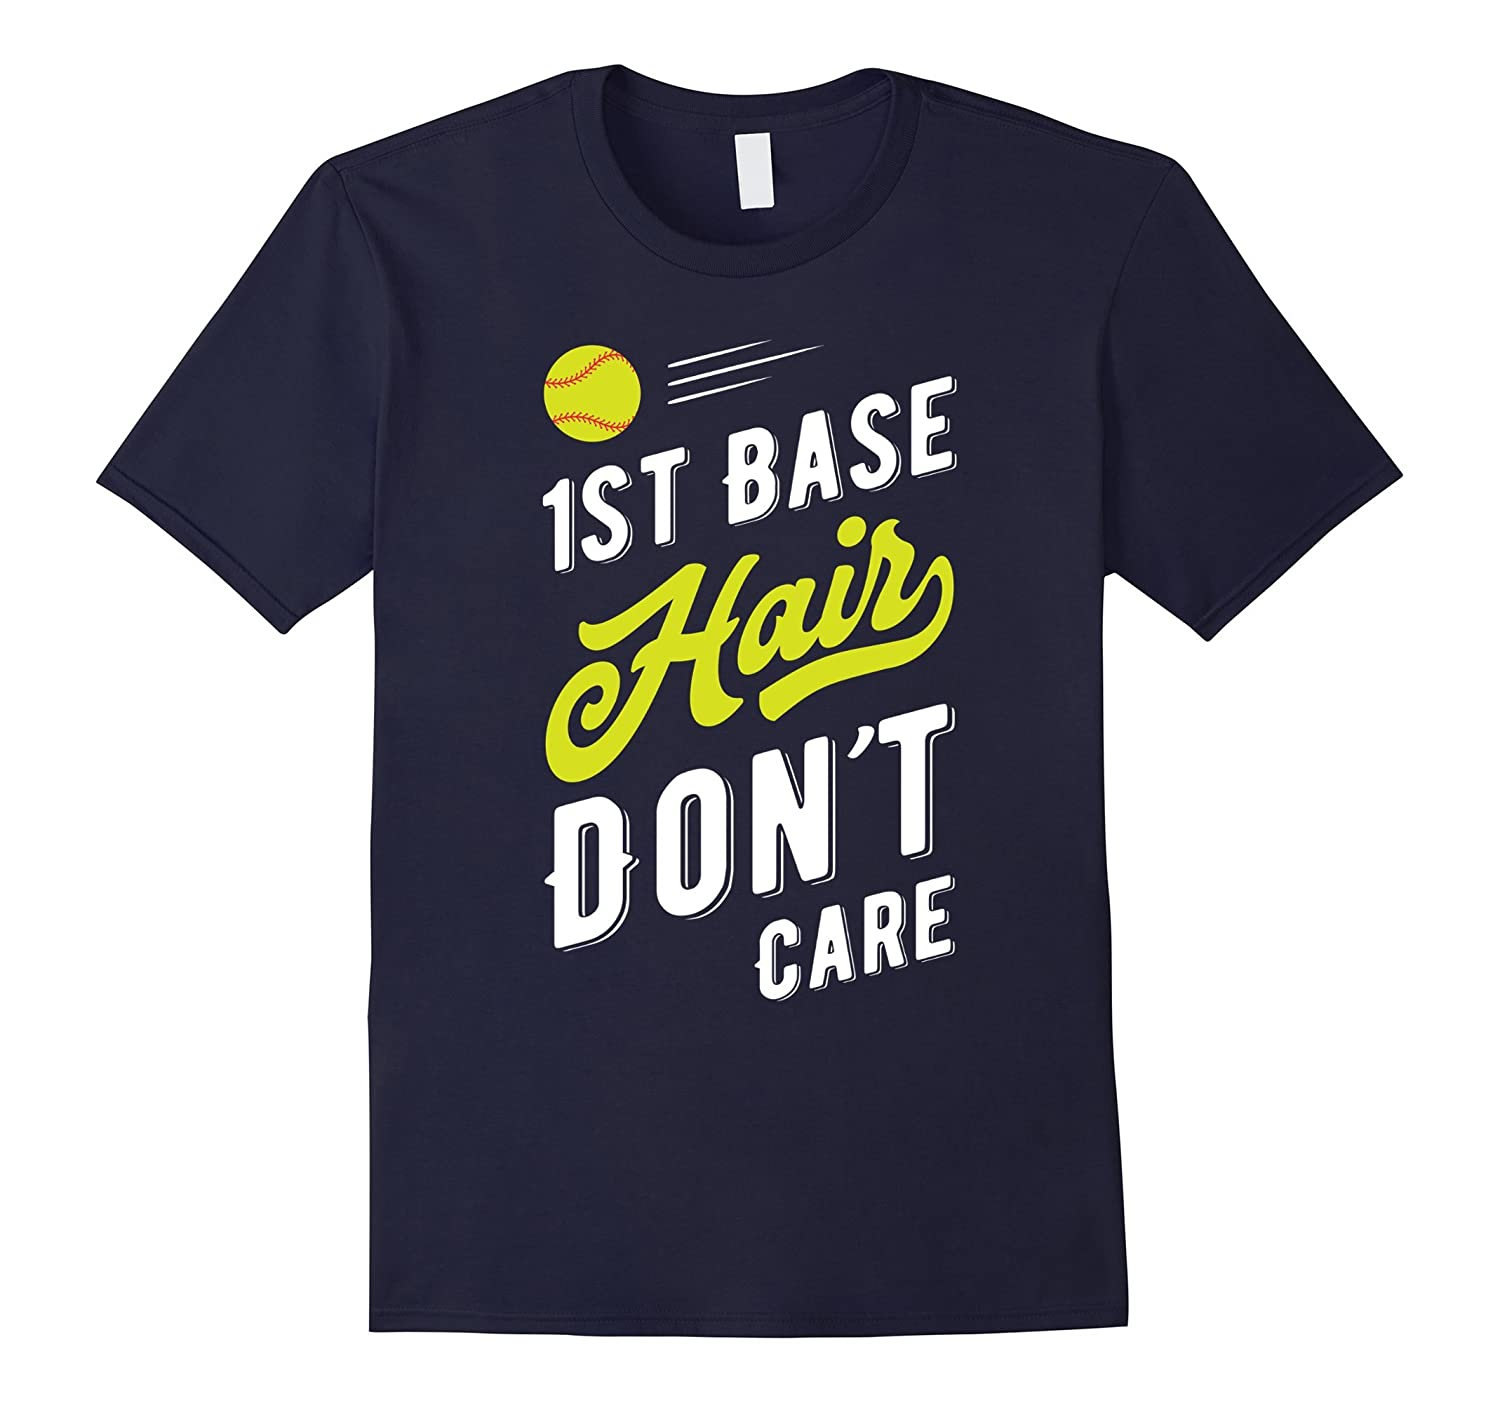 1st Base Hair Don't Care - Funny Women's Softball T-Shirt-4LVS